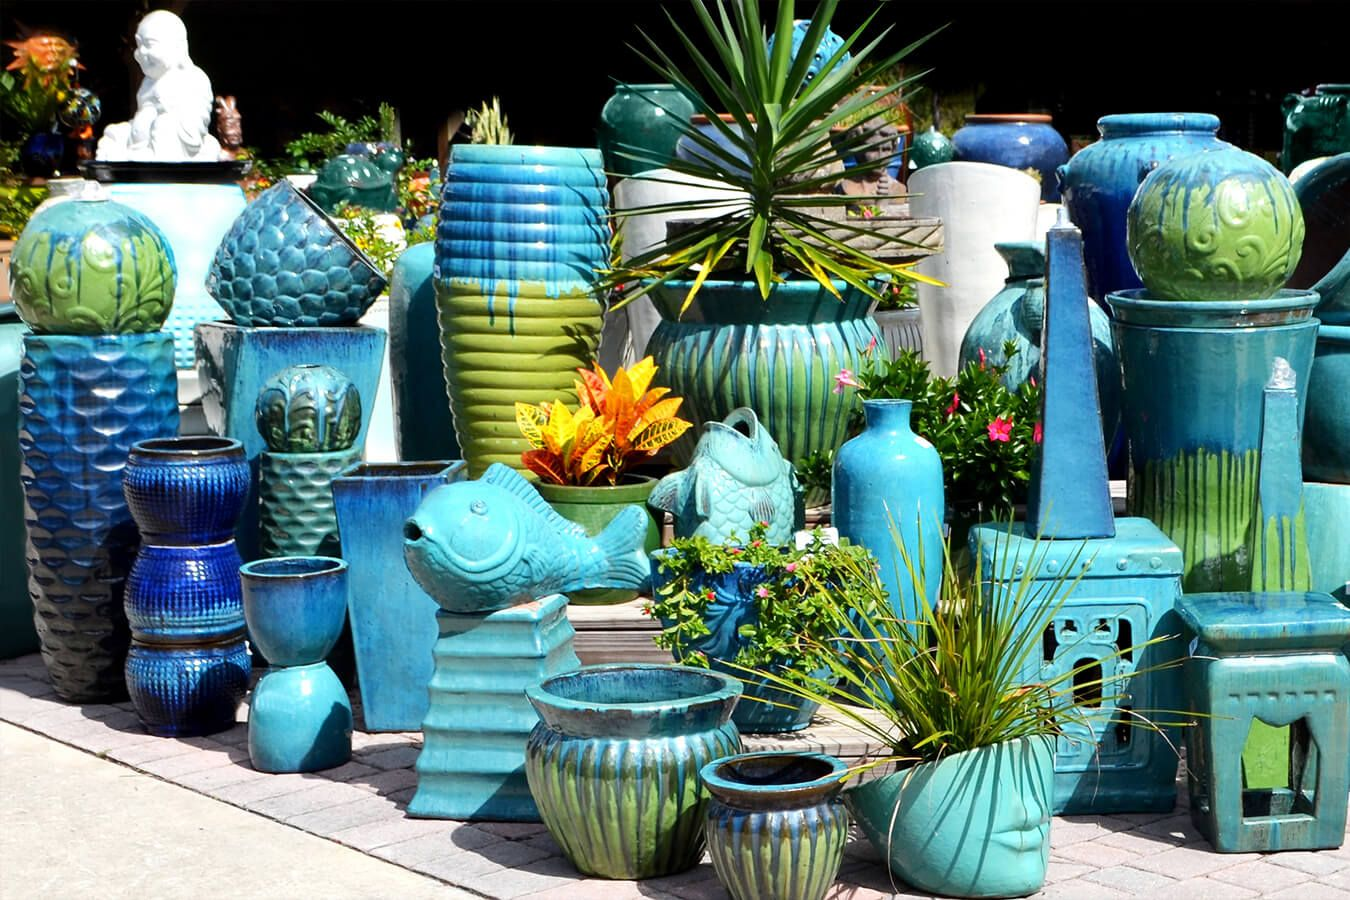 Wholesale Vietnamese Garden Pottery, Large Pots, Outdoor Planters Vases And  Urns, Pot Fountains